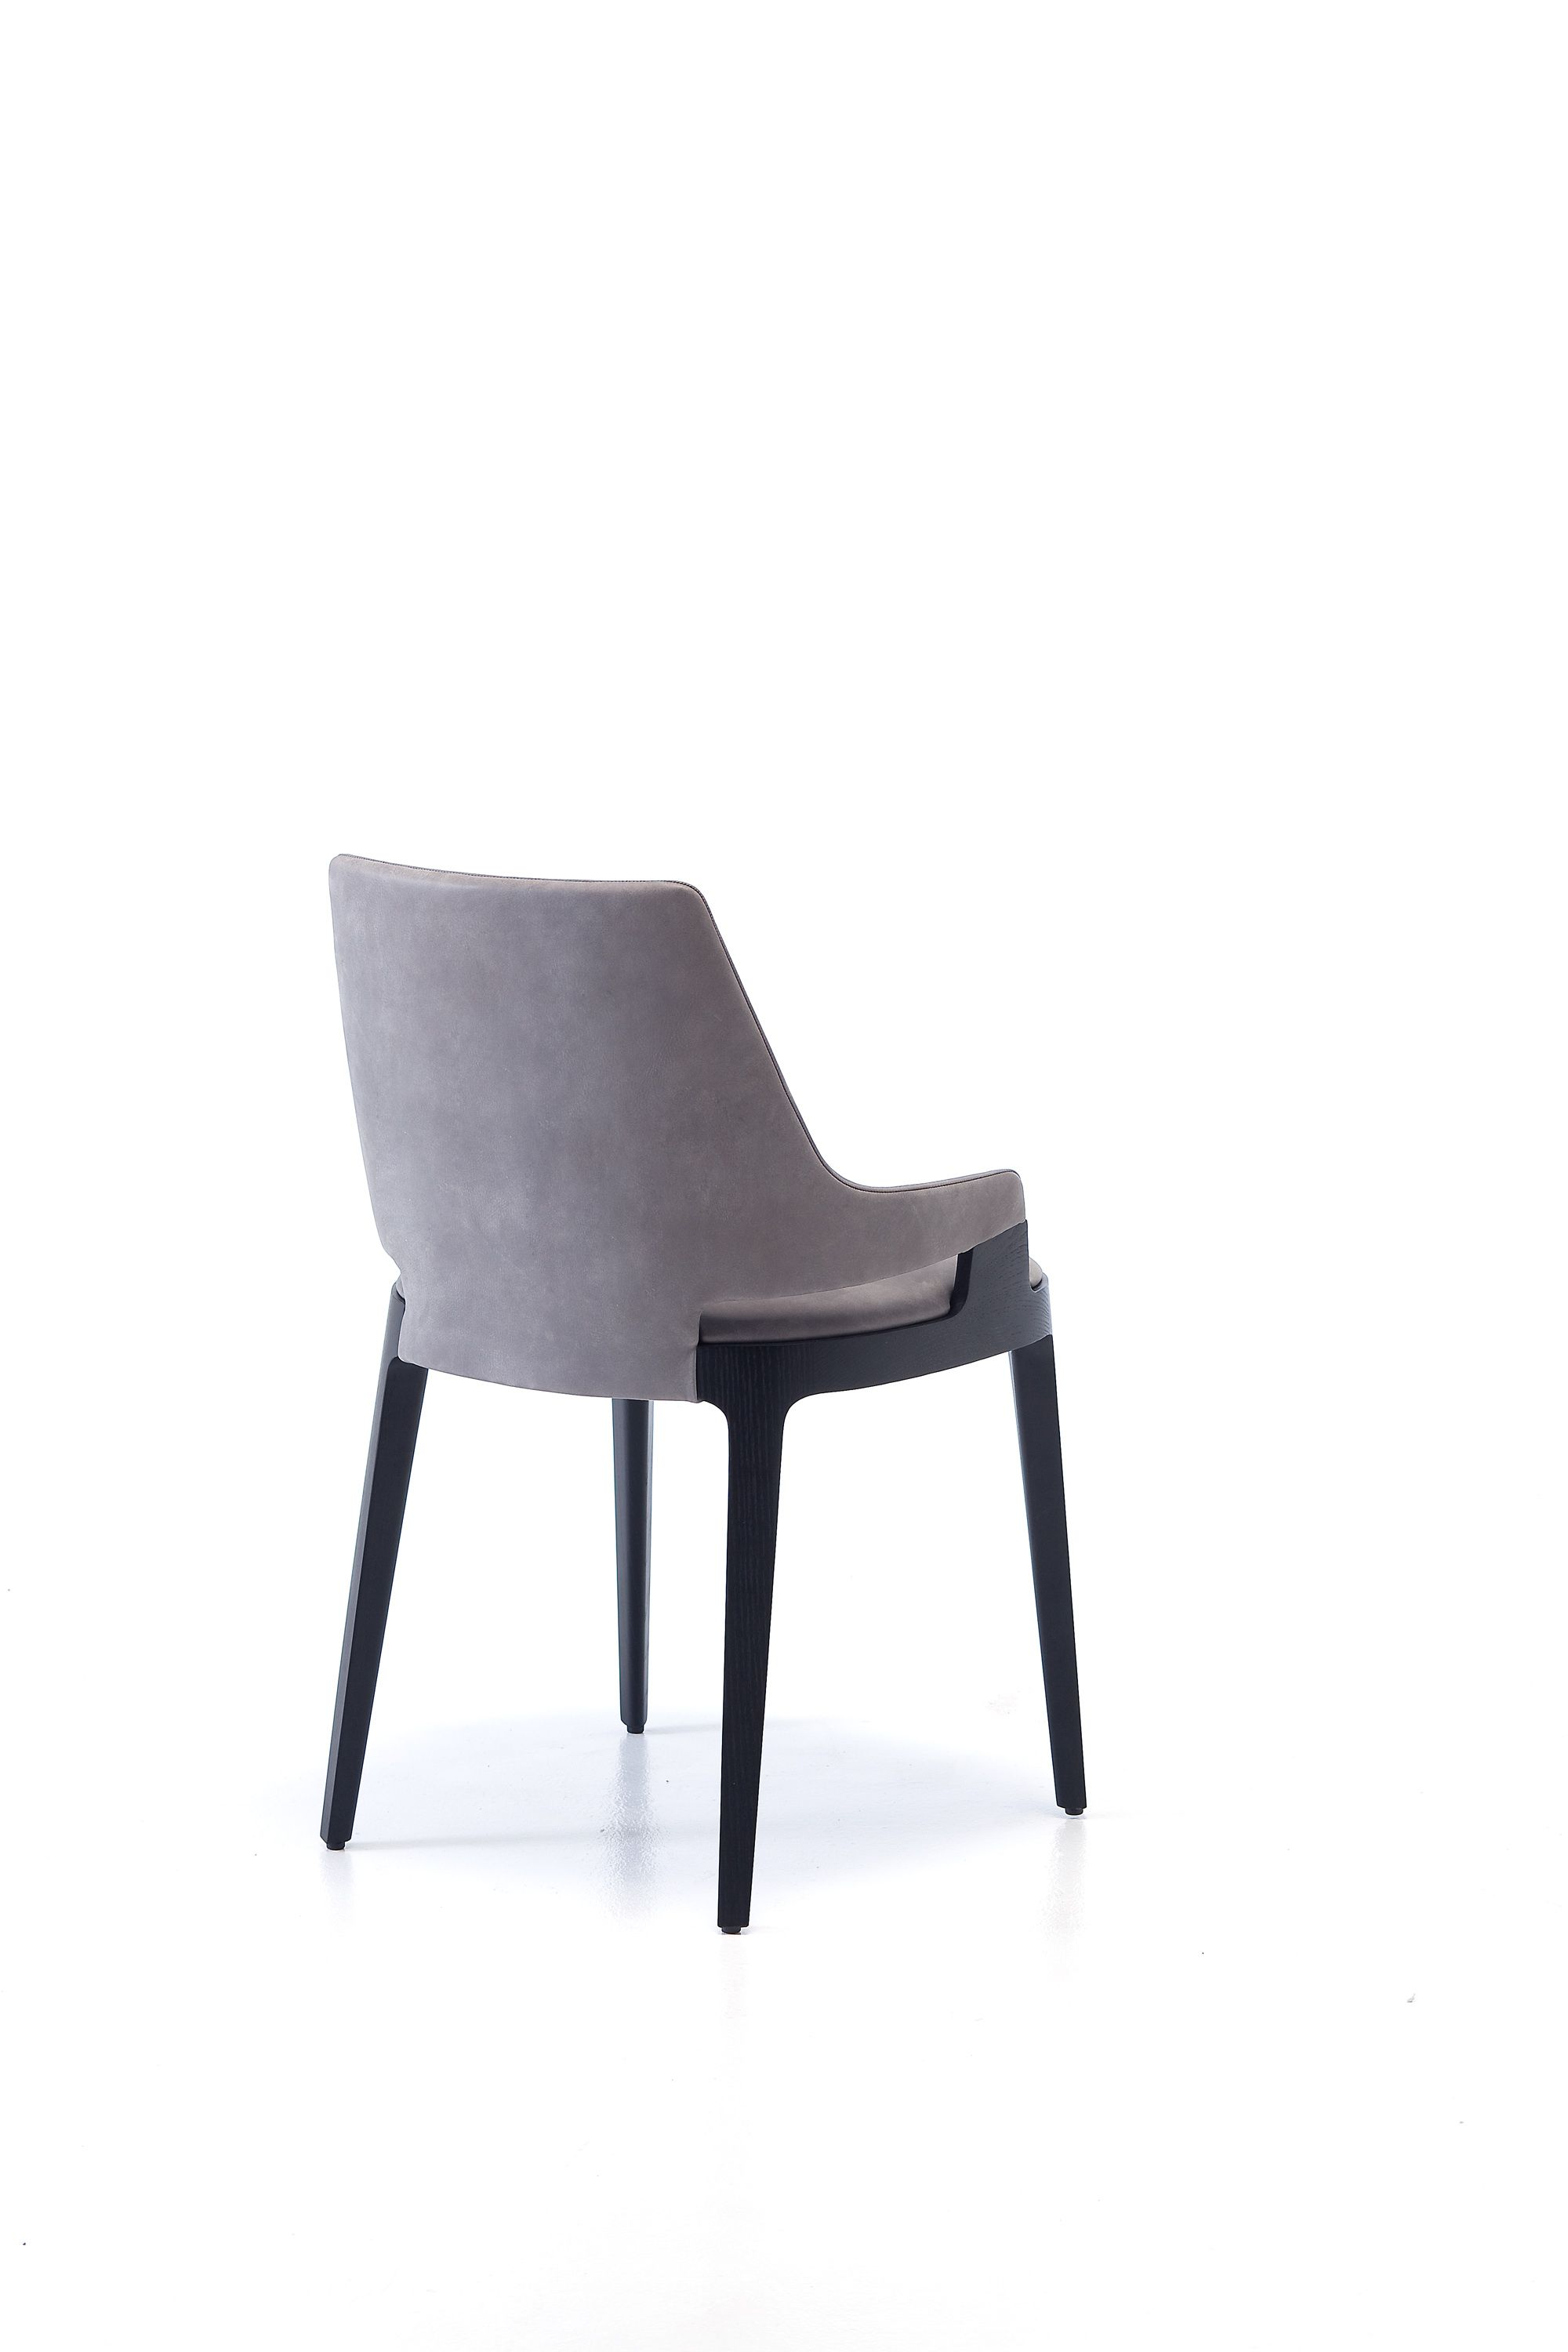 Potocco Velis Chair Furniture Dining Chairs Dining Chairs Furniture Chair